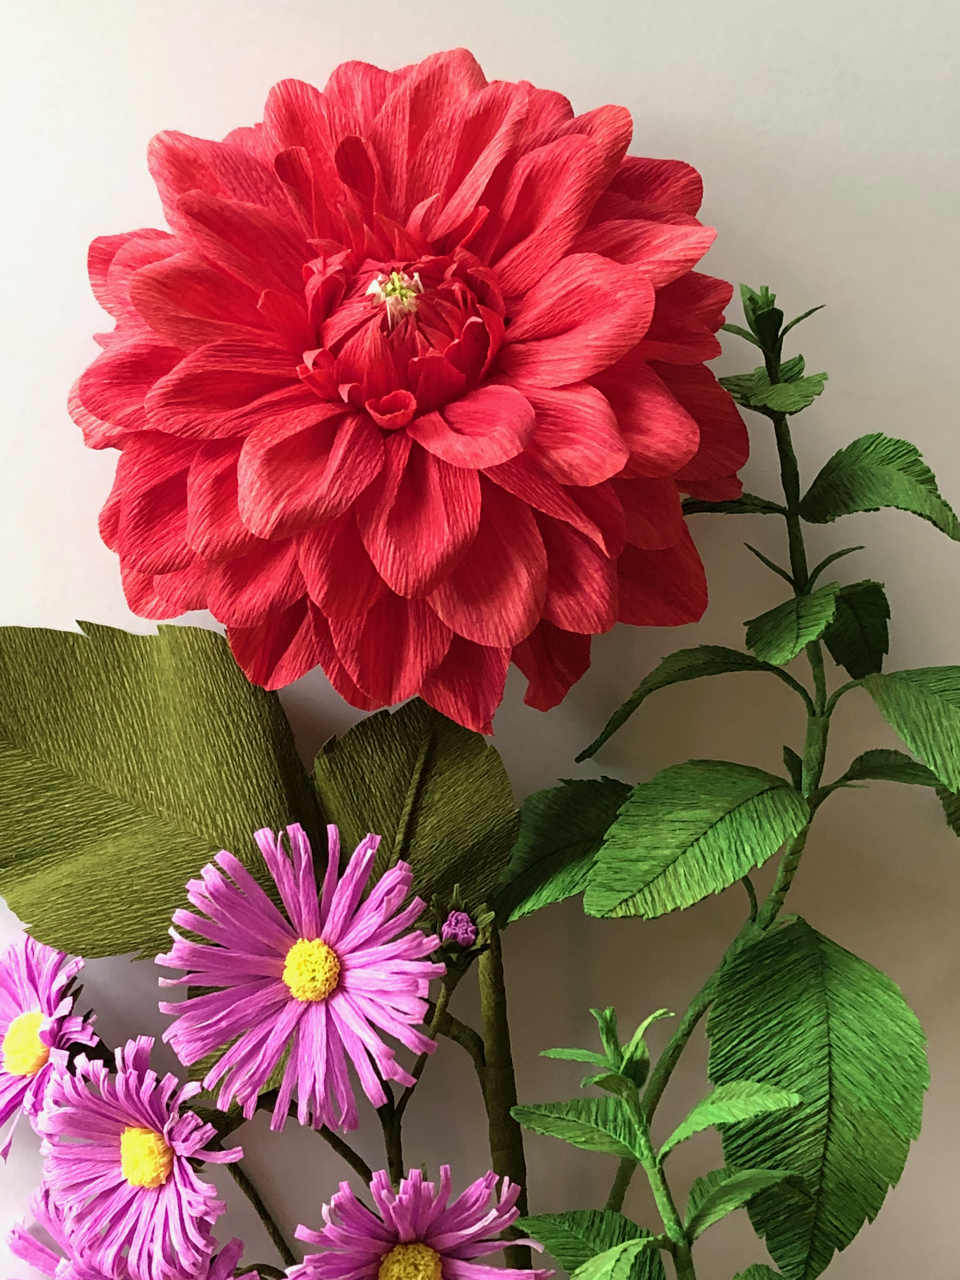 Crepe paper dahlia, asters, and mint by Inga Ilze Peterson